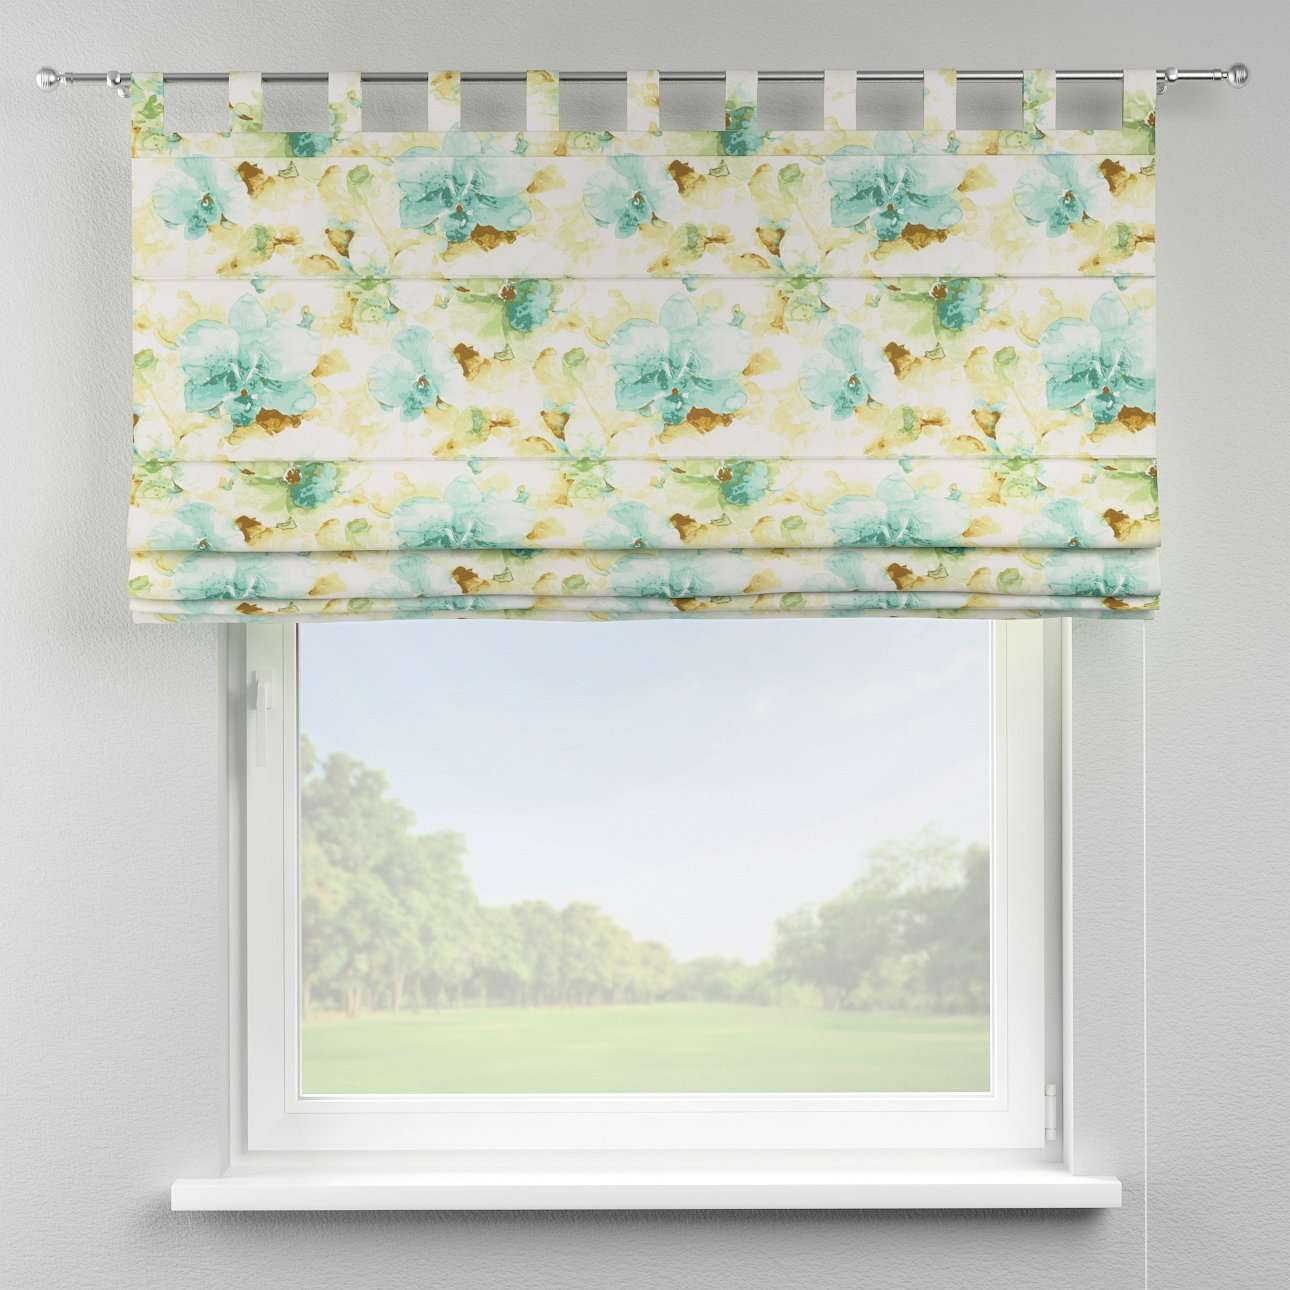 Verona tab top roman blind 80 × 170 cm (31.5 × 67 inch) in collection Acapulco, fabric: 141-35